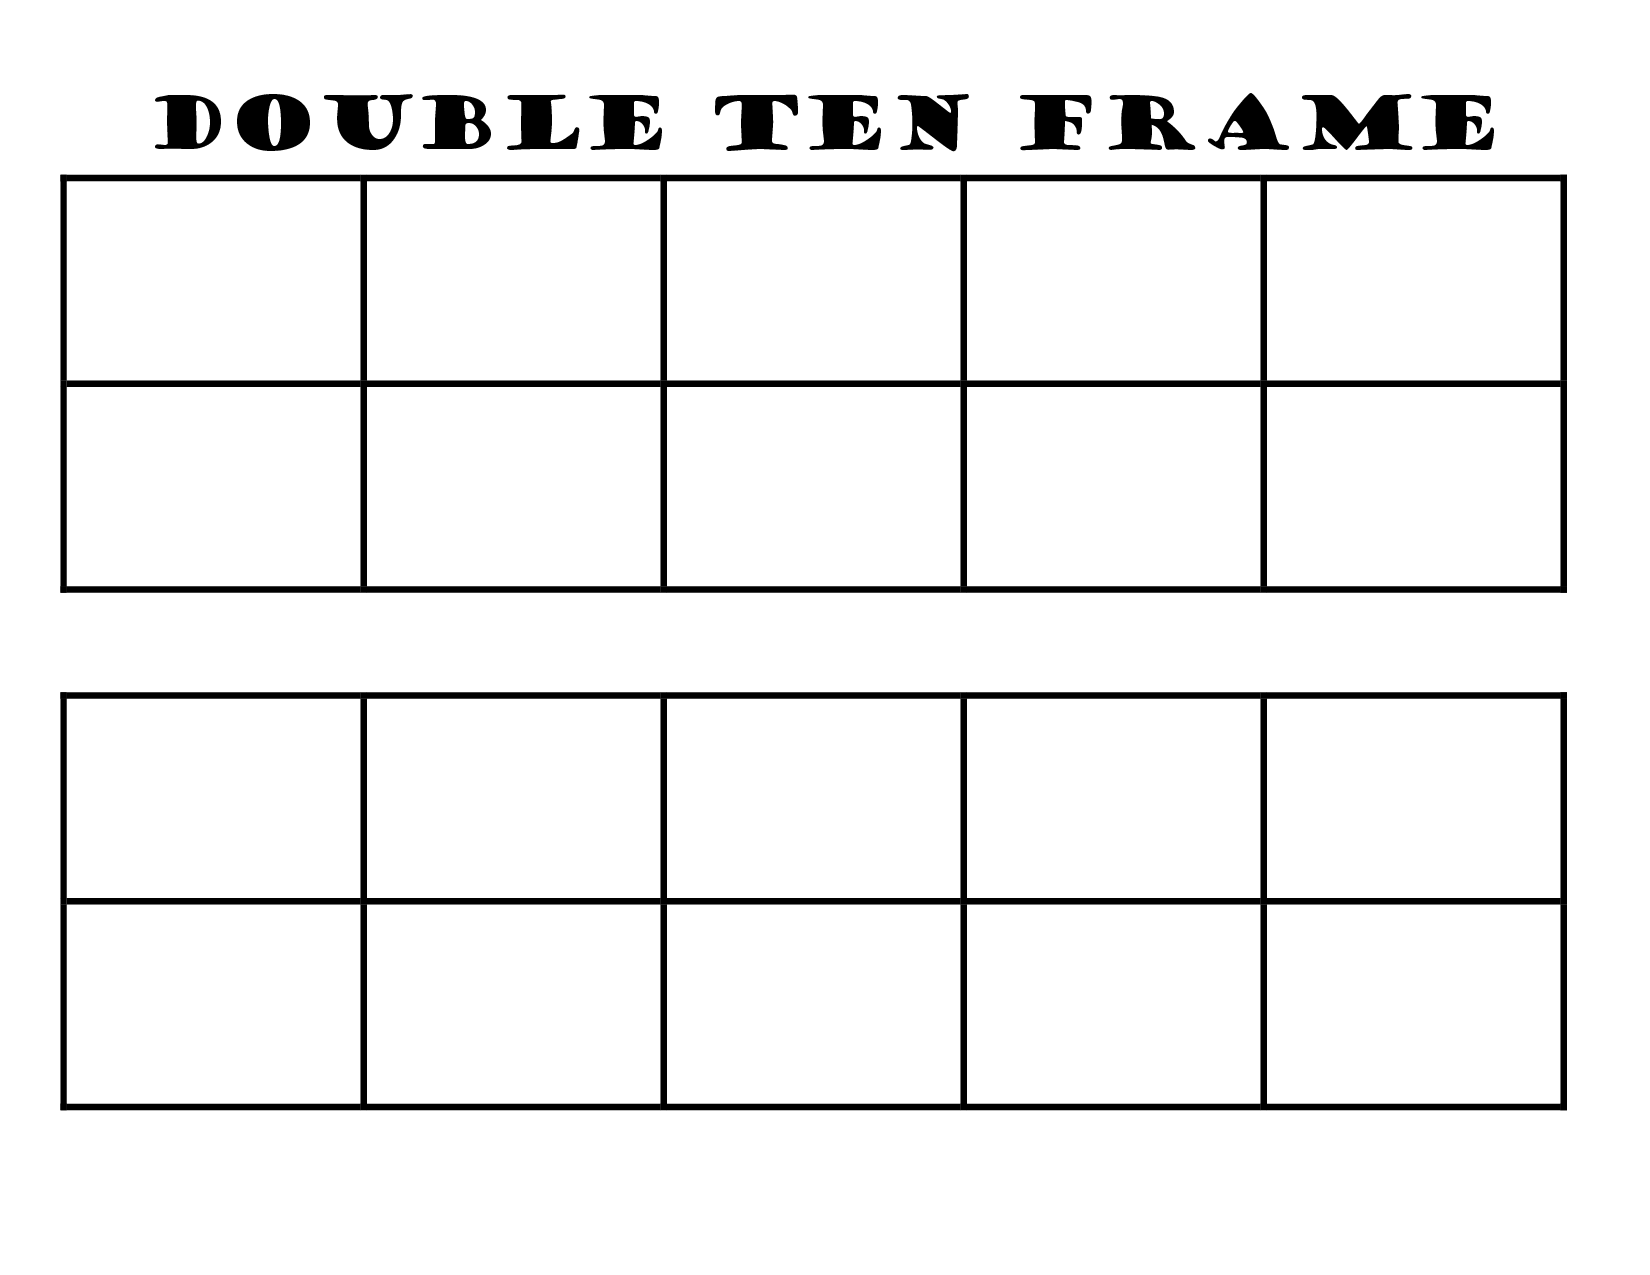 Ten Frame 6 best images of 10 frame template printable - blank double ...